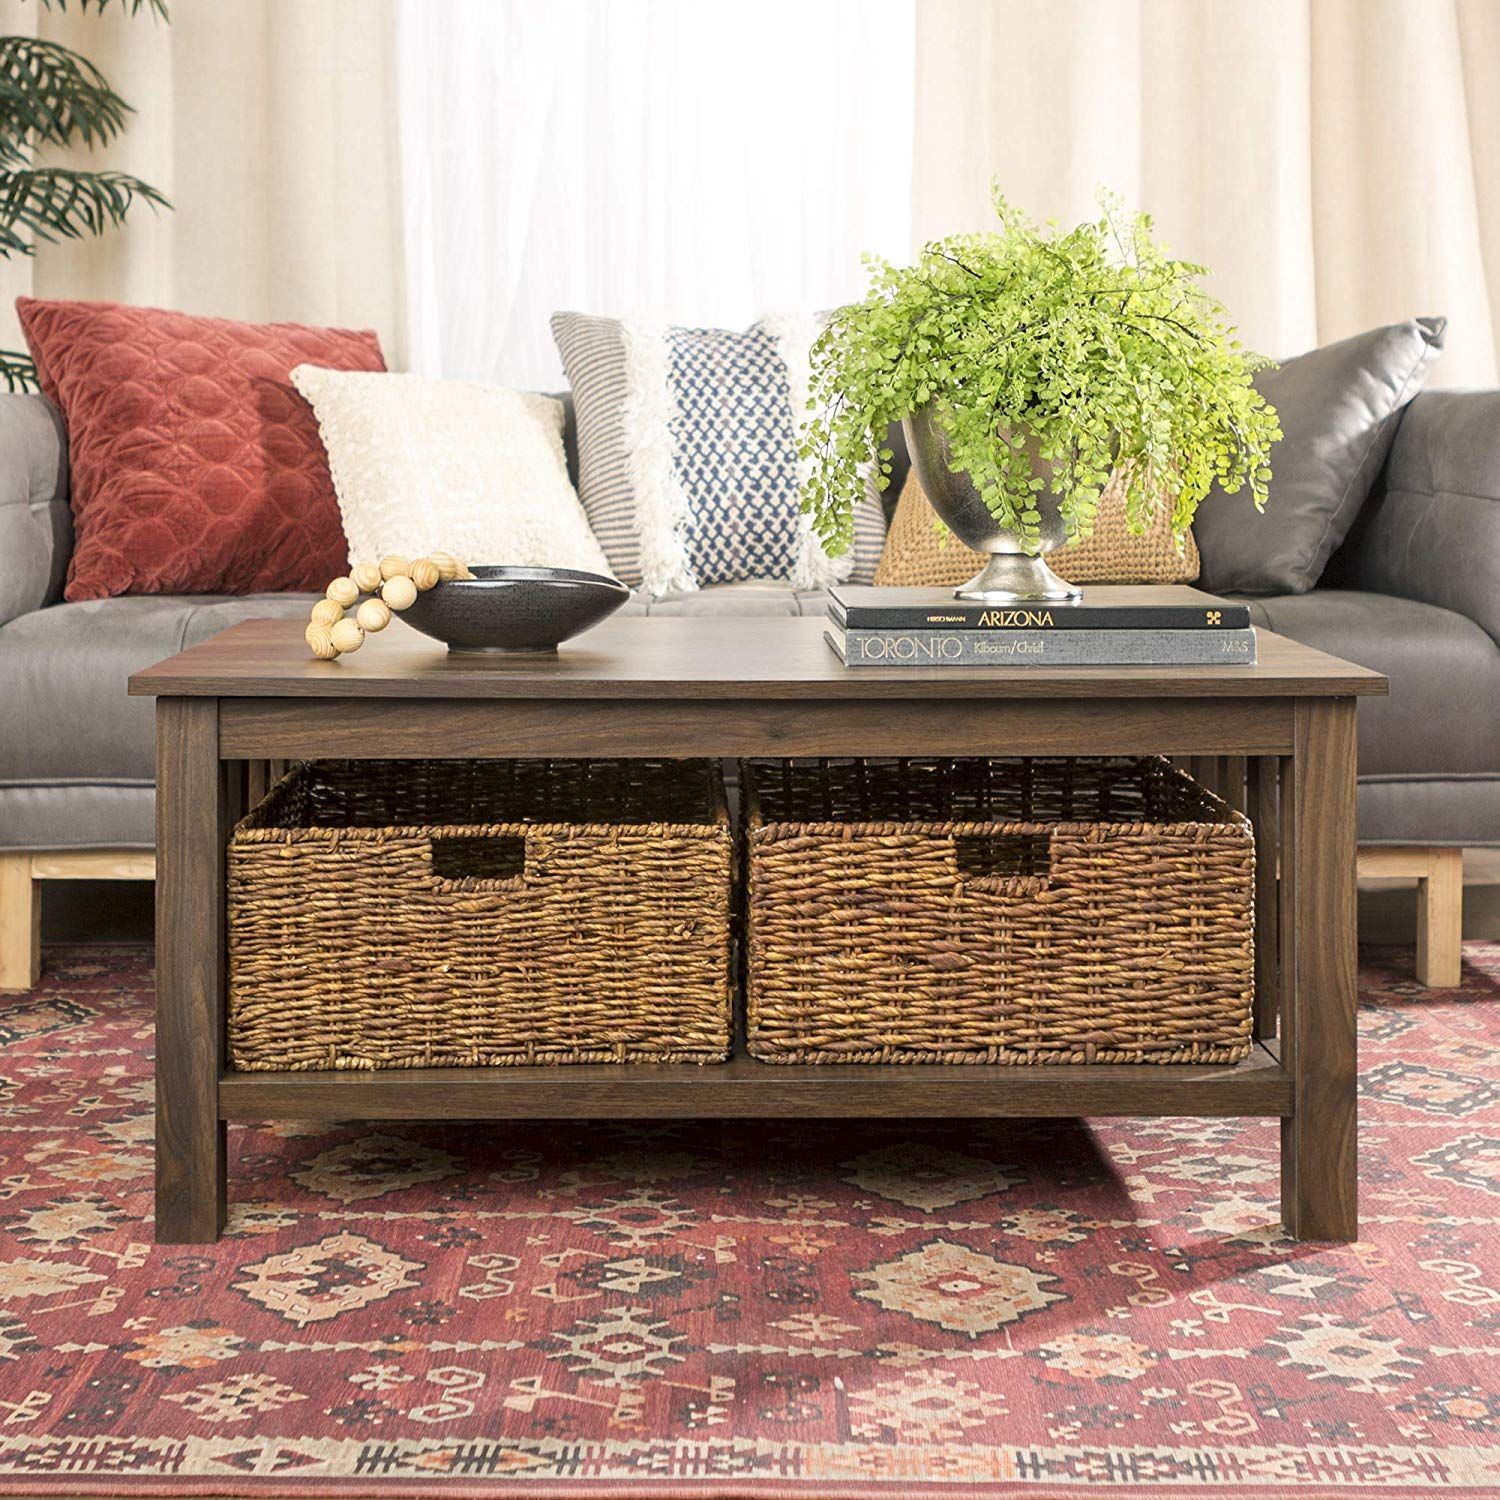 We Furniture Rustic Wood Rectangle Coffee Accent Table Storage